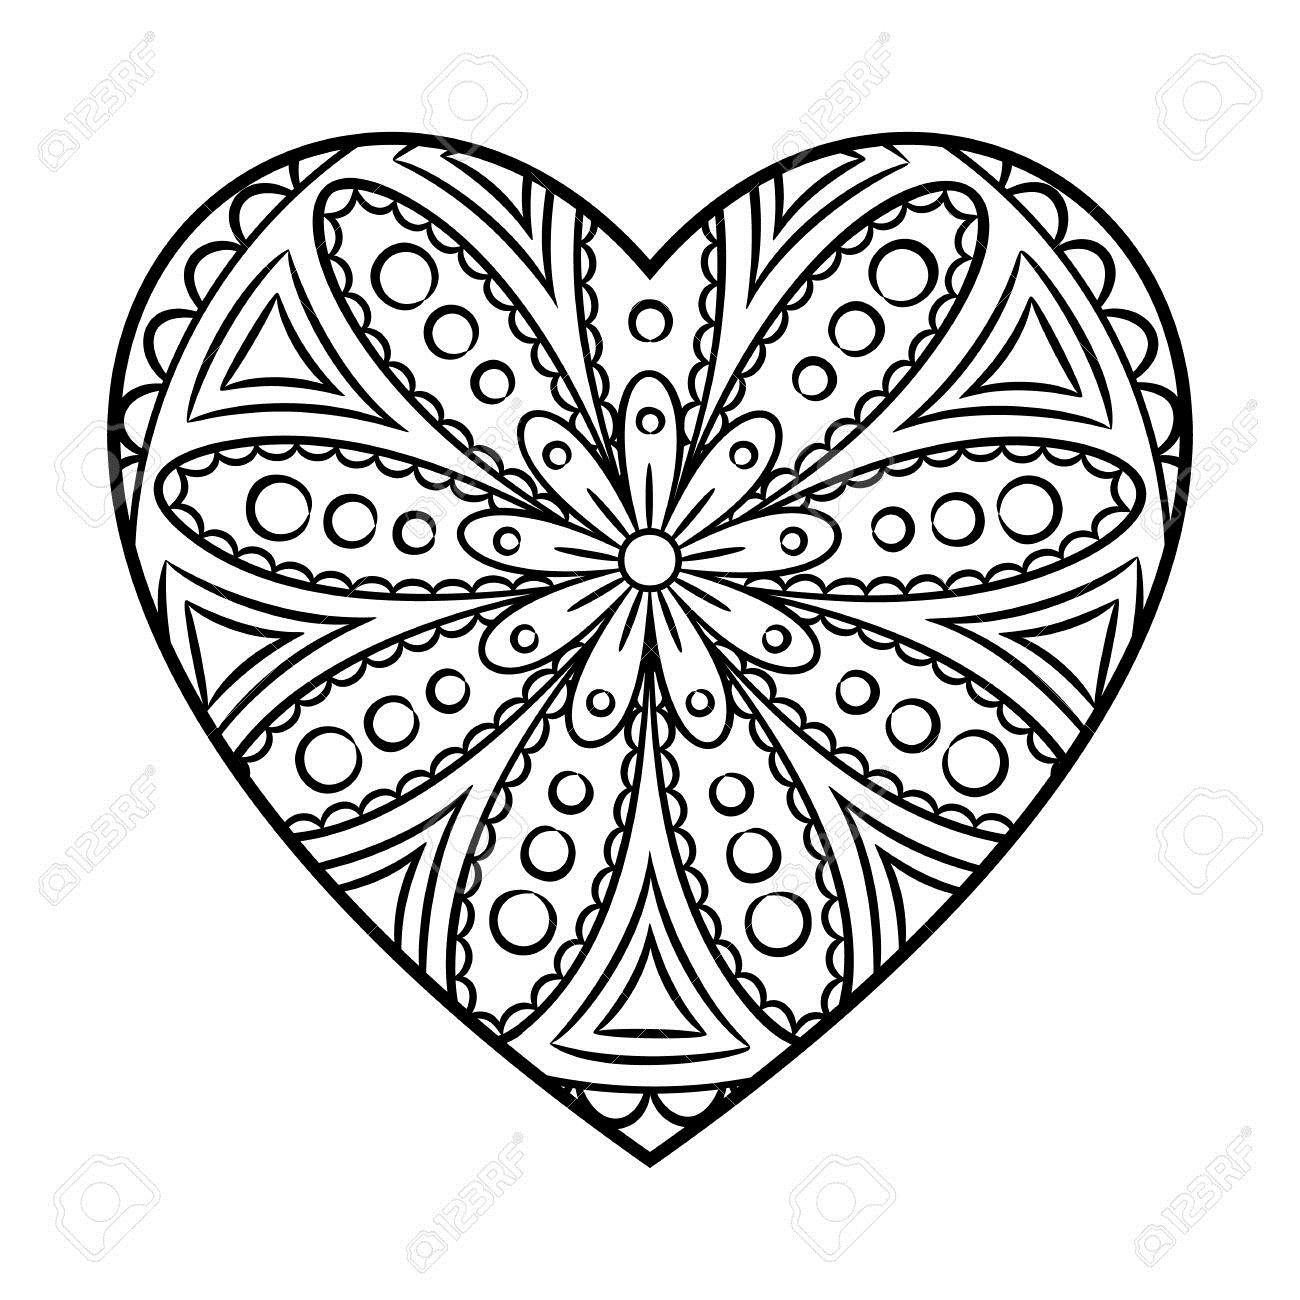 62078202-Doodle-Heart-Mandala-Coloring-Page-Outline-Floral-Design-Element-Stock-Photo